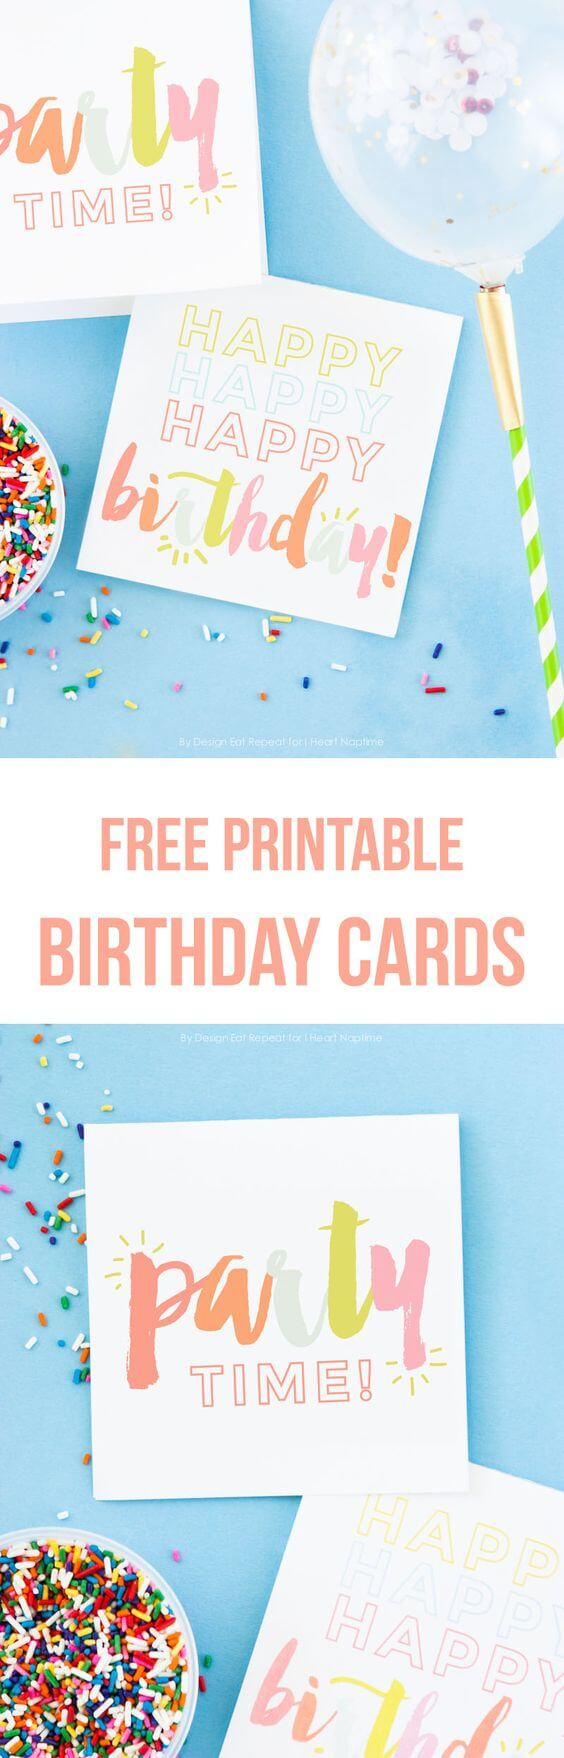 Adorable Free Printable Birthday Cards - I Heart Naptime - Free Printable Bday Cards